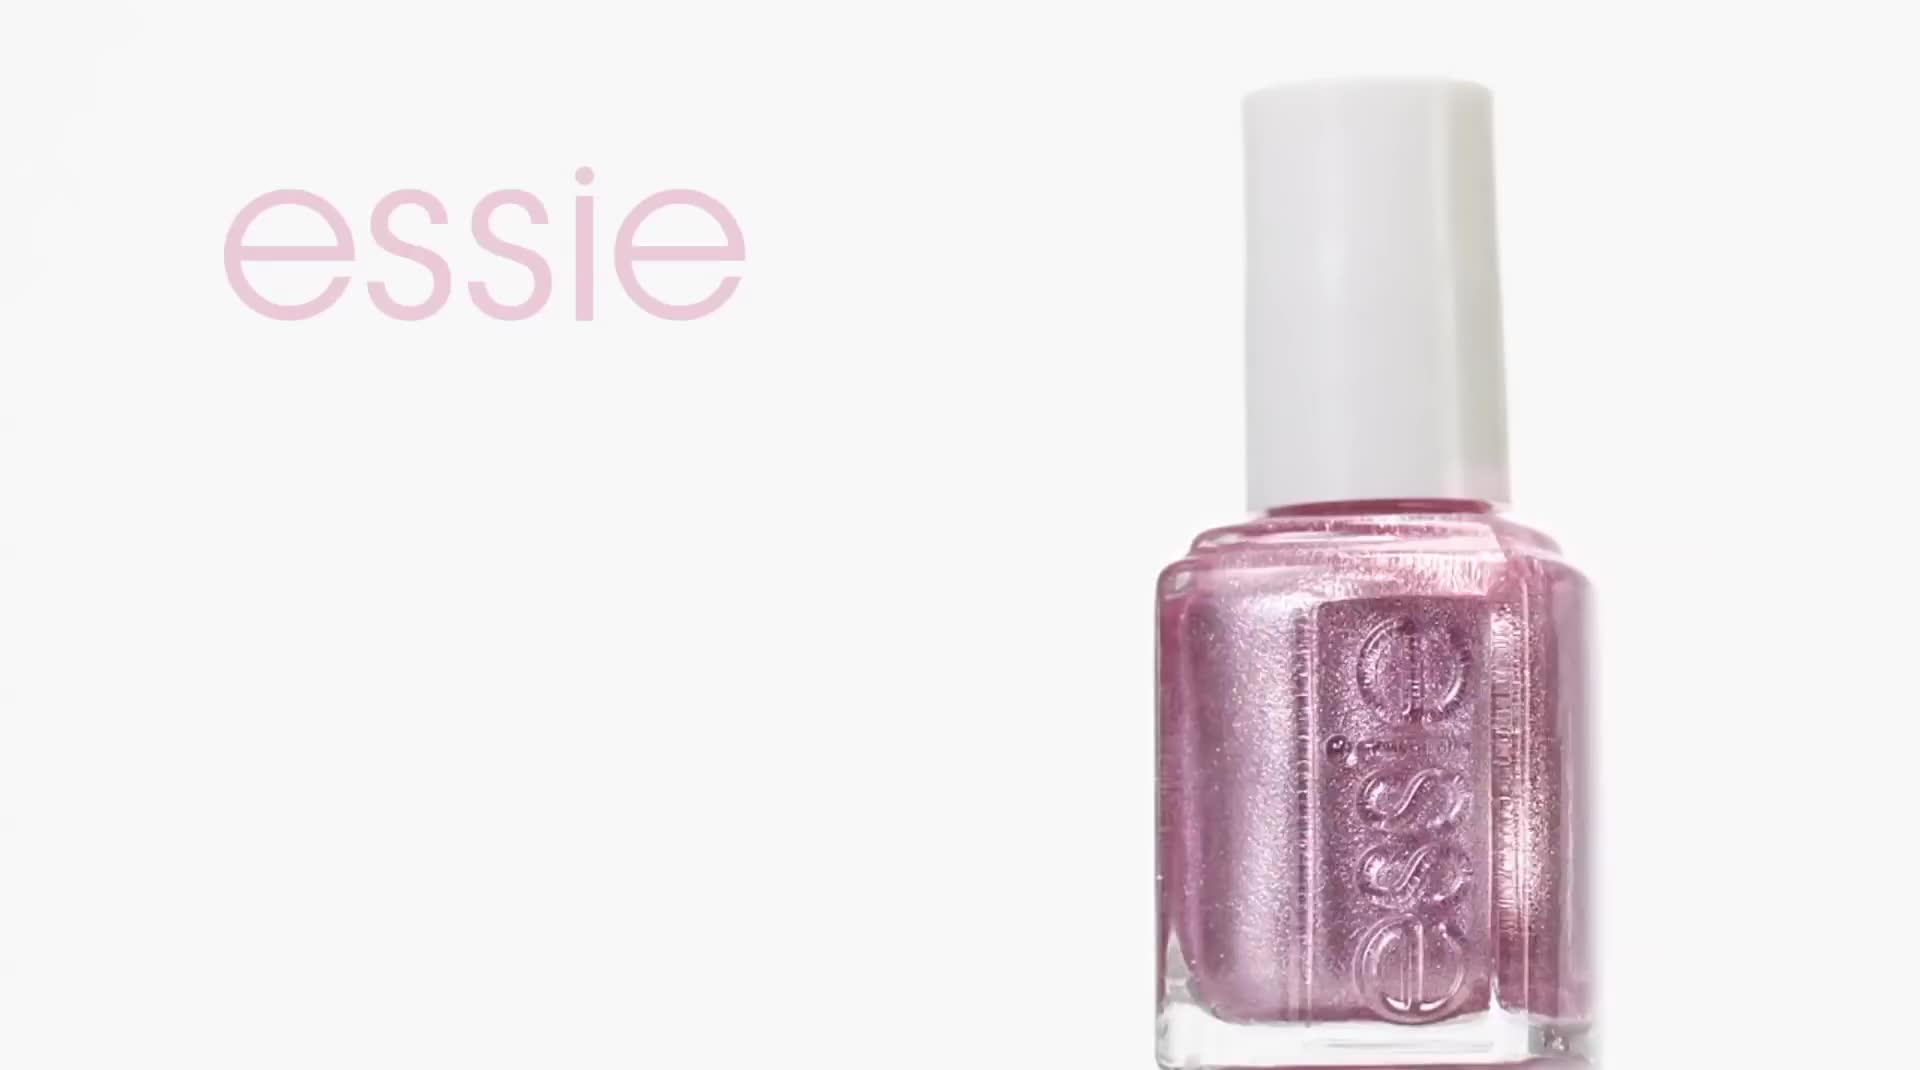 NEW Essie Gel Couture Nail Polish Enchanted Collection! - welove.MAKEUP